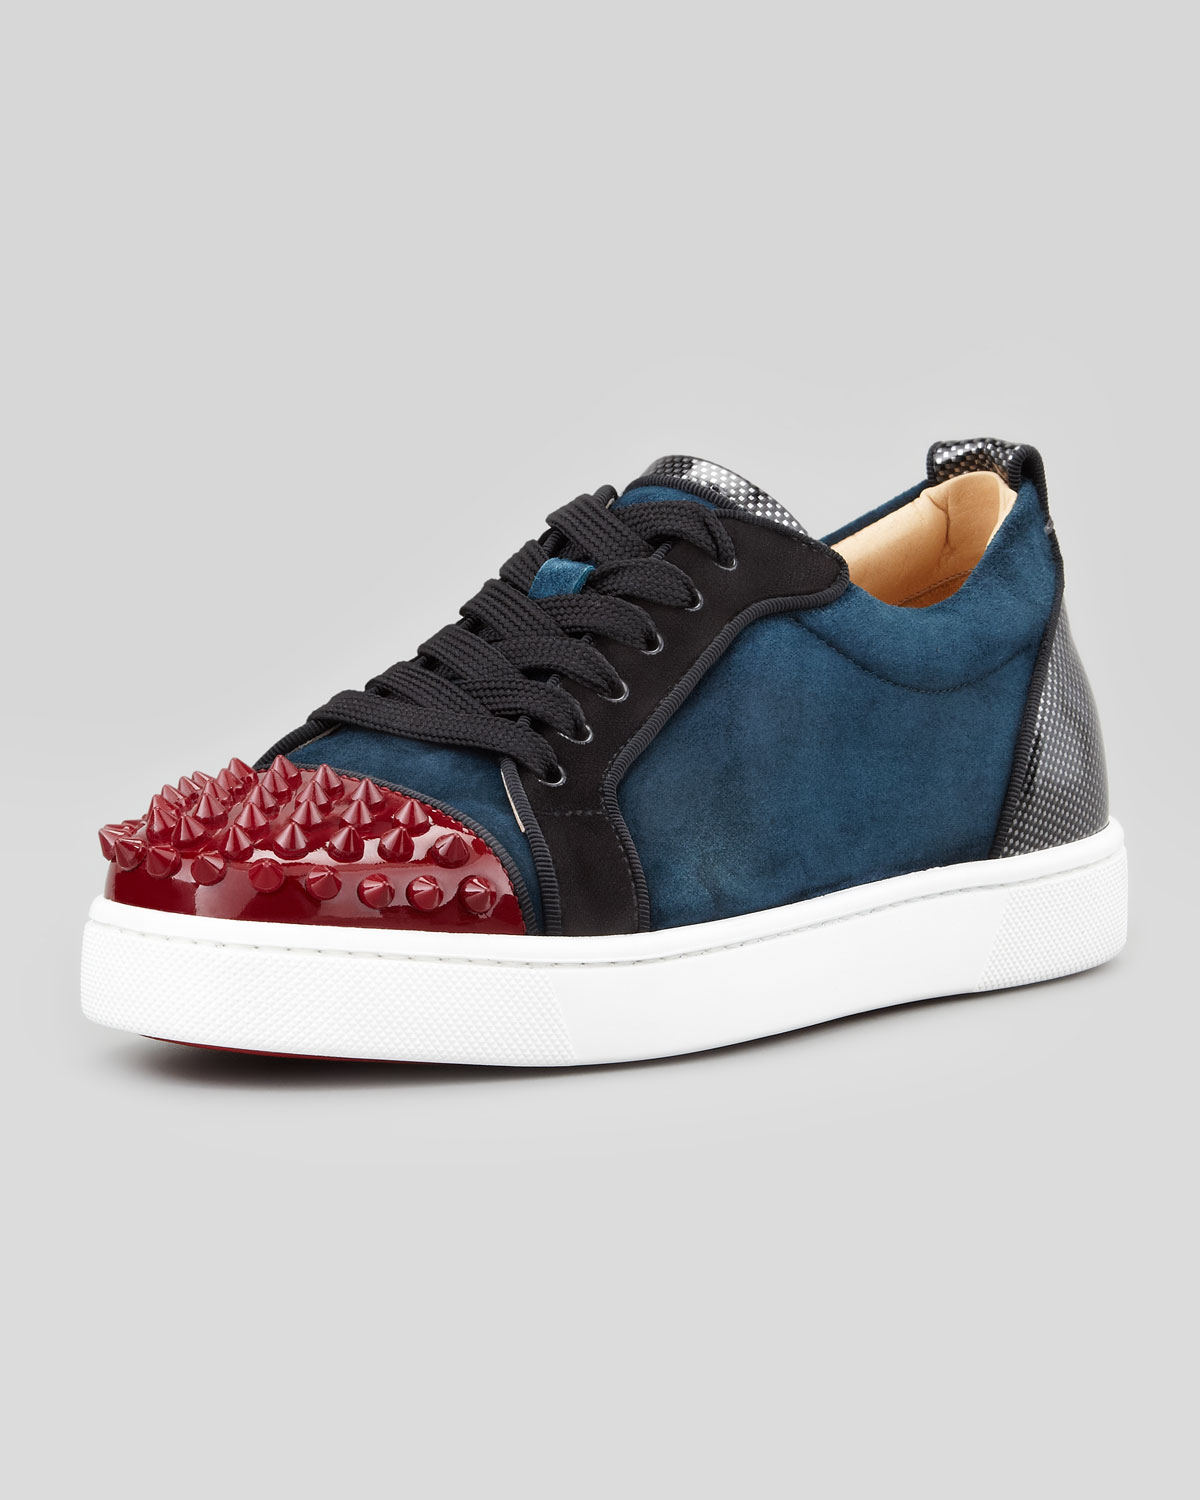 92766a1cfdc Lyst - Christian Louboutin Louis Junior Spikes Low-top Sneaker in ...